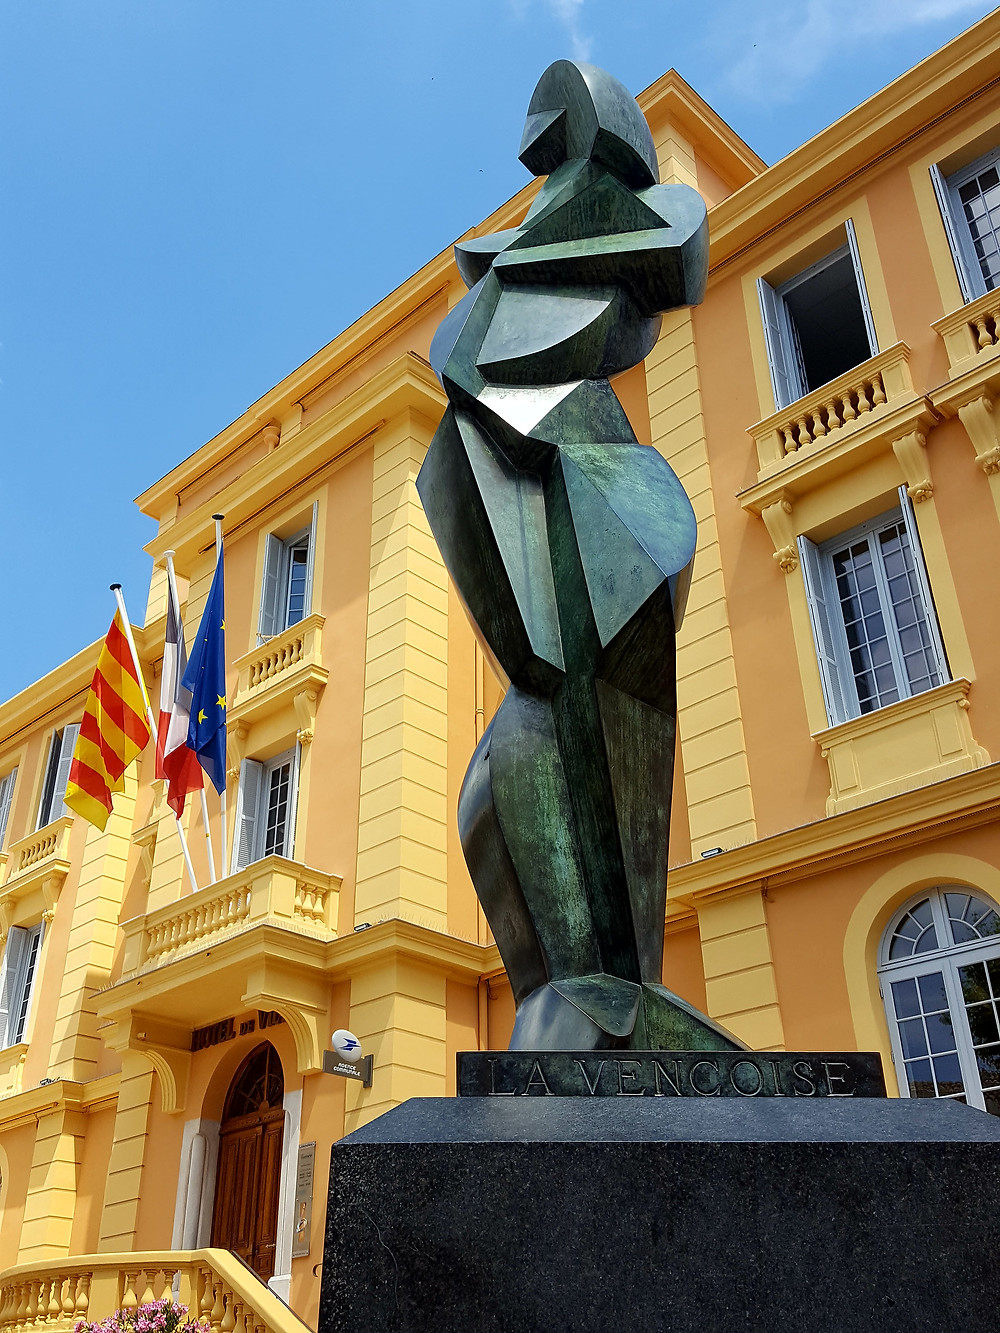 """This sculpture in front of city hall is titled """"La Vençoise."""" In English that means Badass Woman from Vence."""